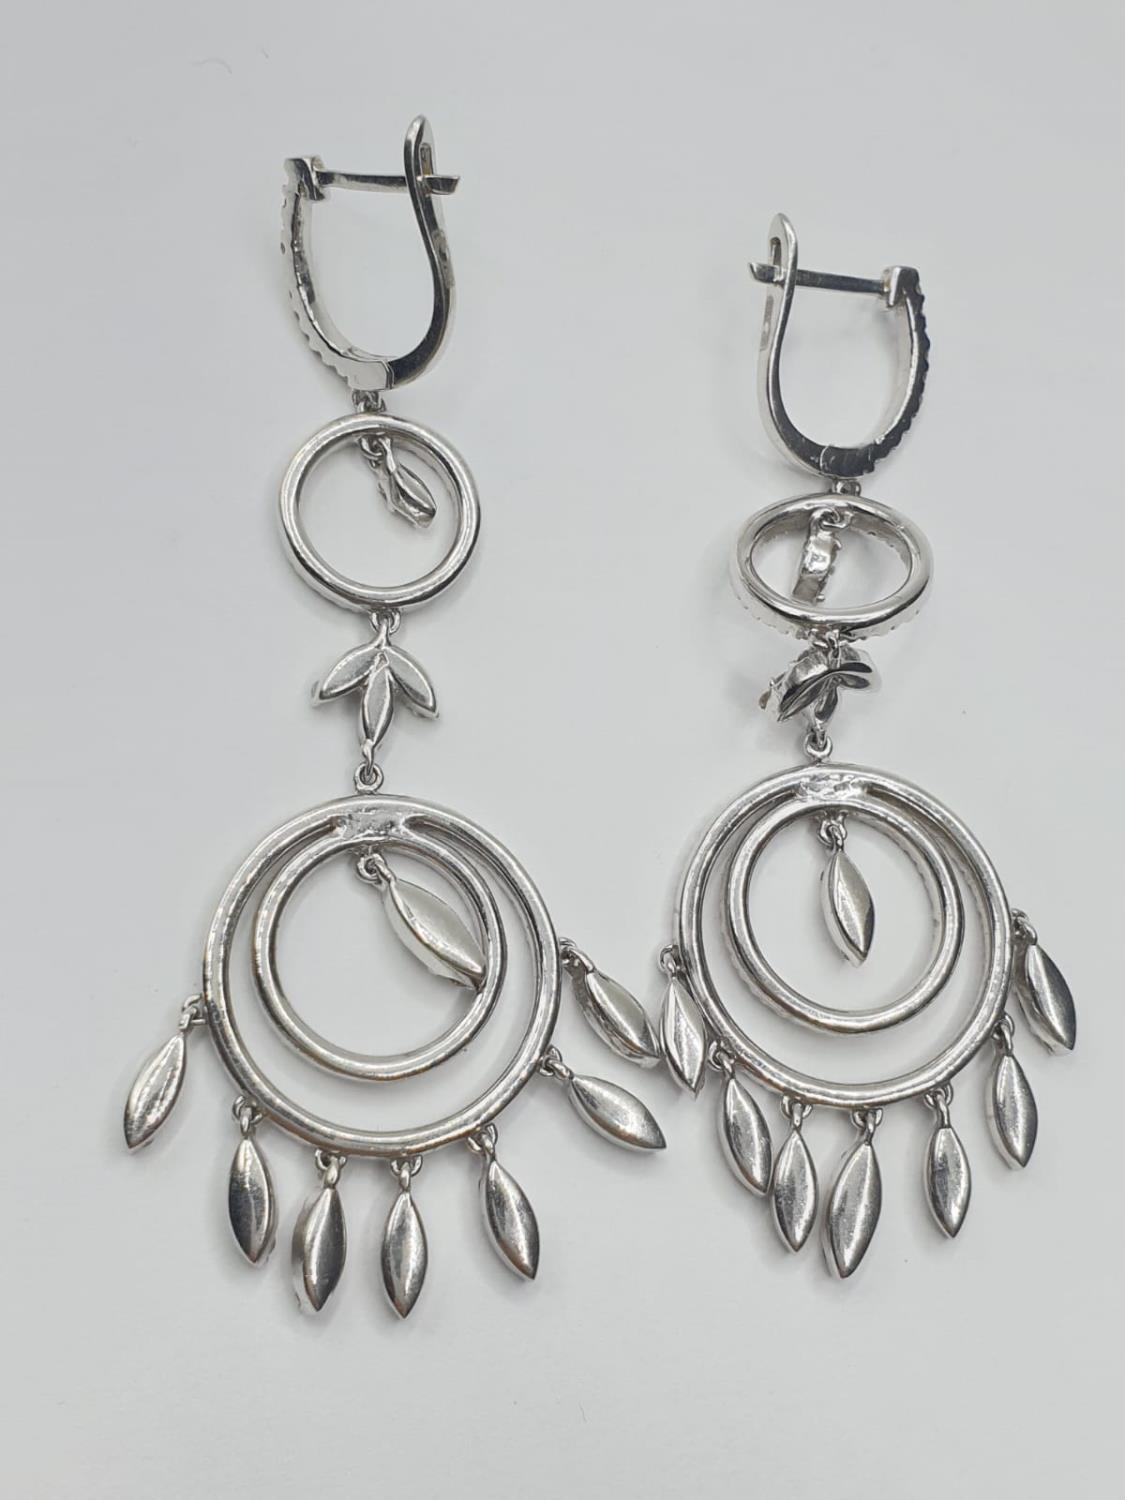 Pair of 18ct white gold and diamond drop earrings in the shape of dream catchers, weight 15.82g - Image 3 of 4